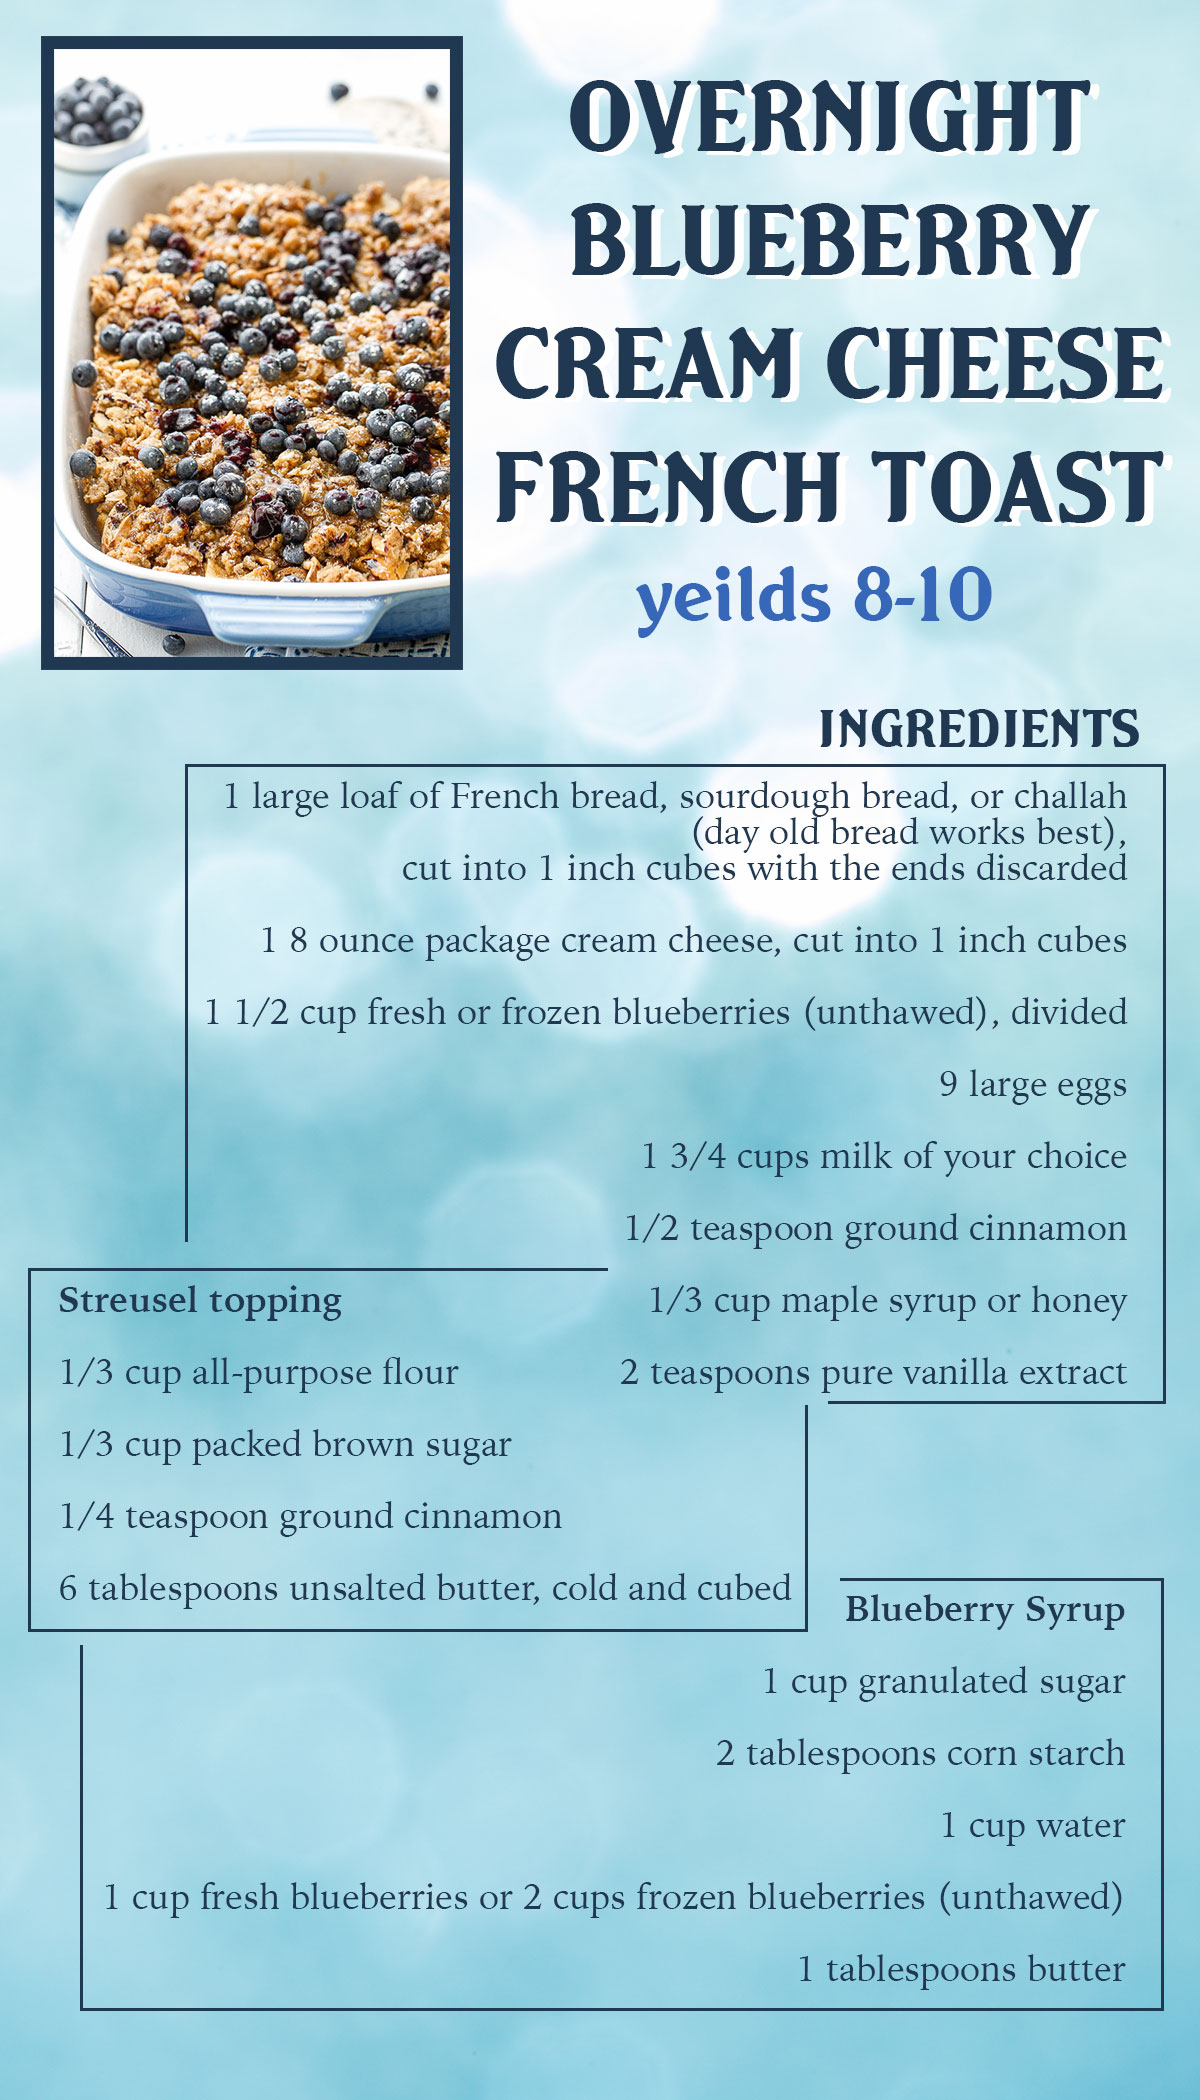 Overnight Blueberry Cream Cheese French Toast Recipe Card